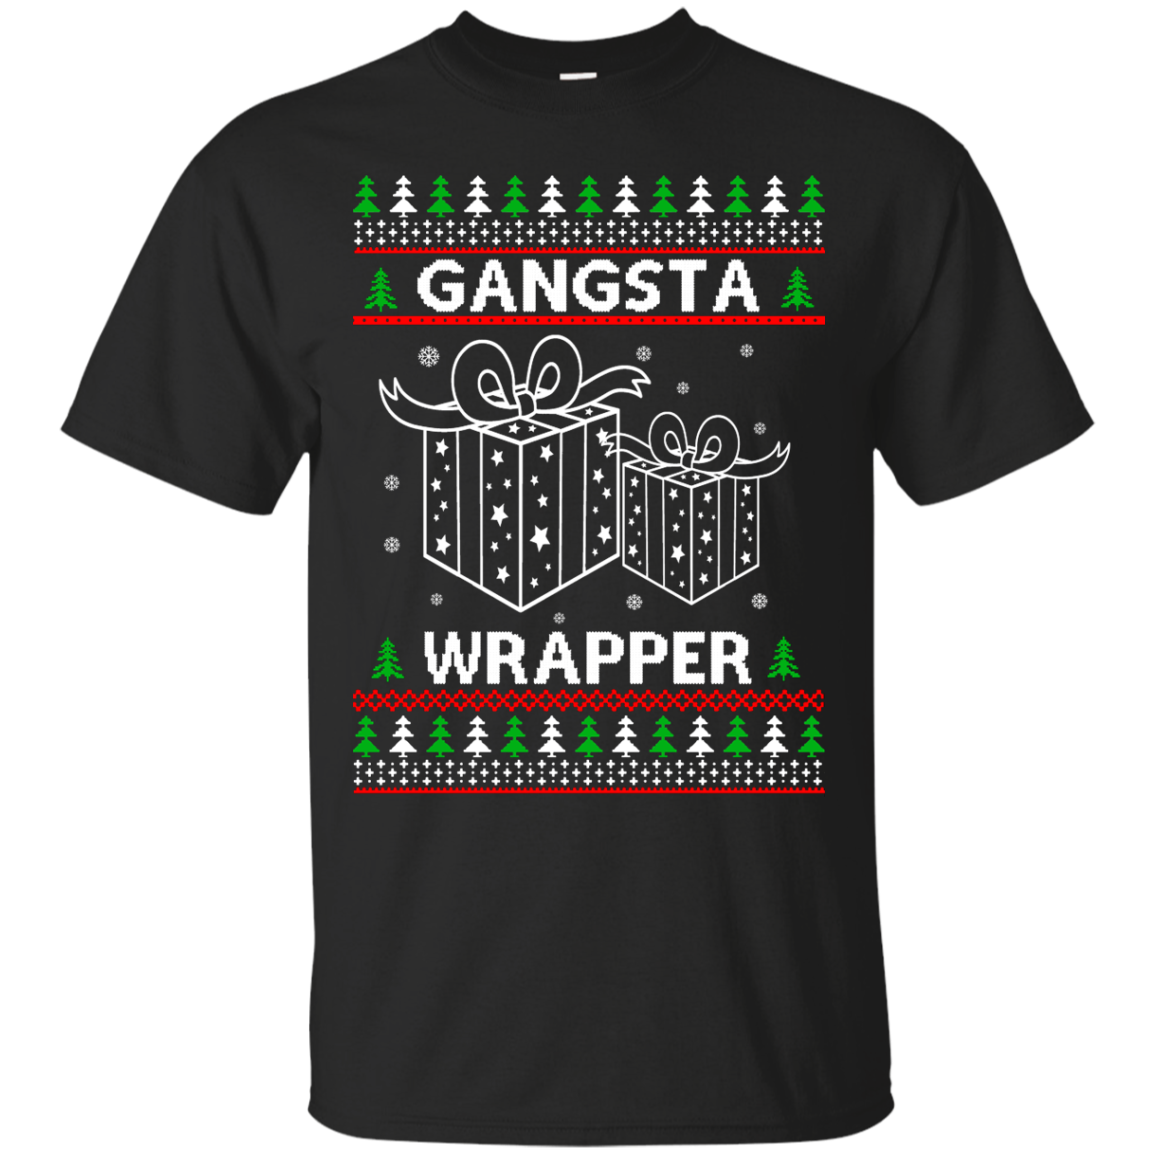 Gangsta Wrapper Ugly Christmas Sweater, Shirt, Hoodie